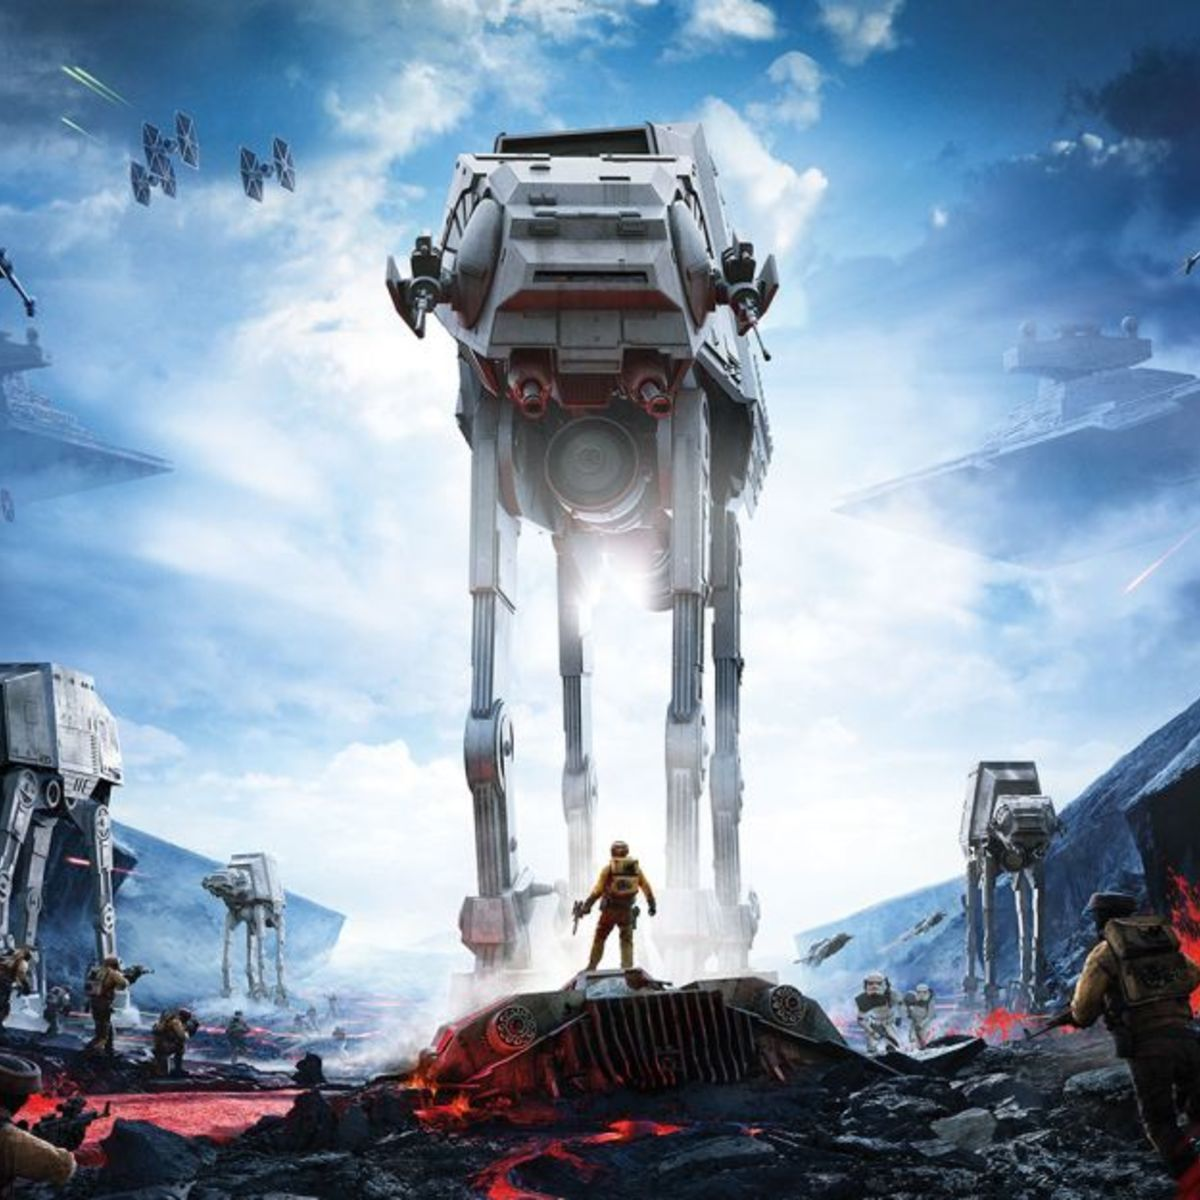 Star-Wars-Battlefront_2015_04-16-15_002.jpg